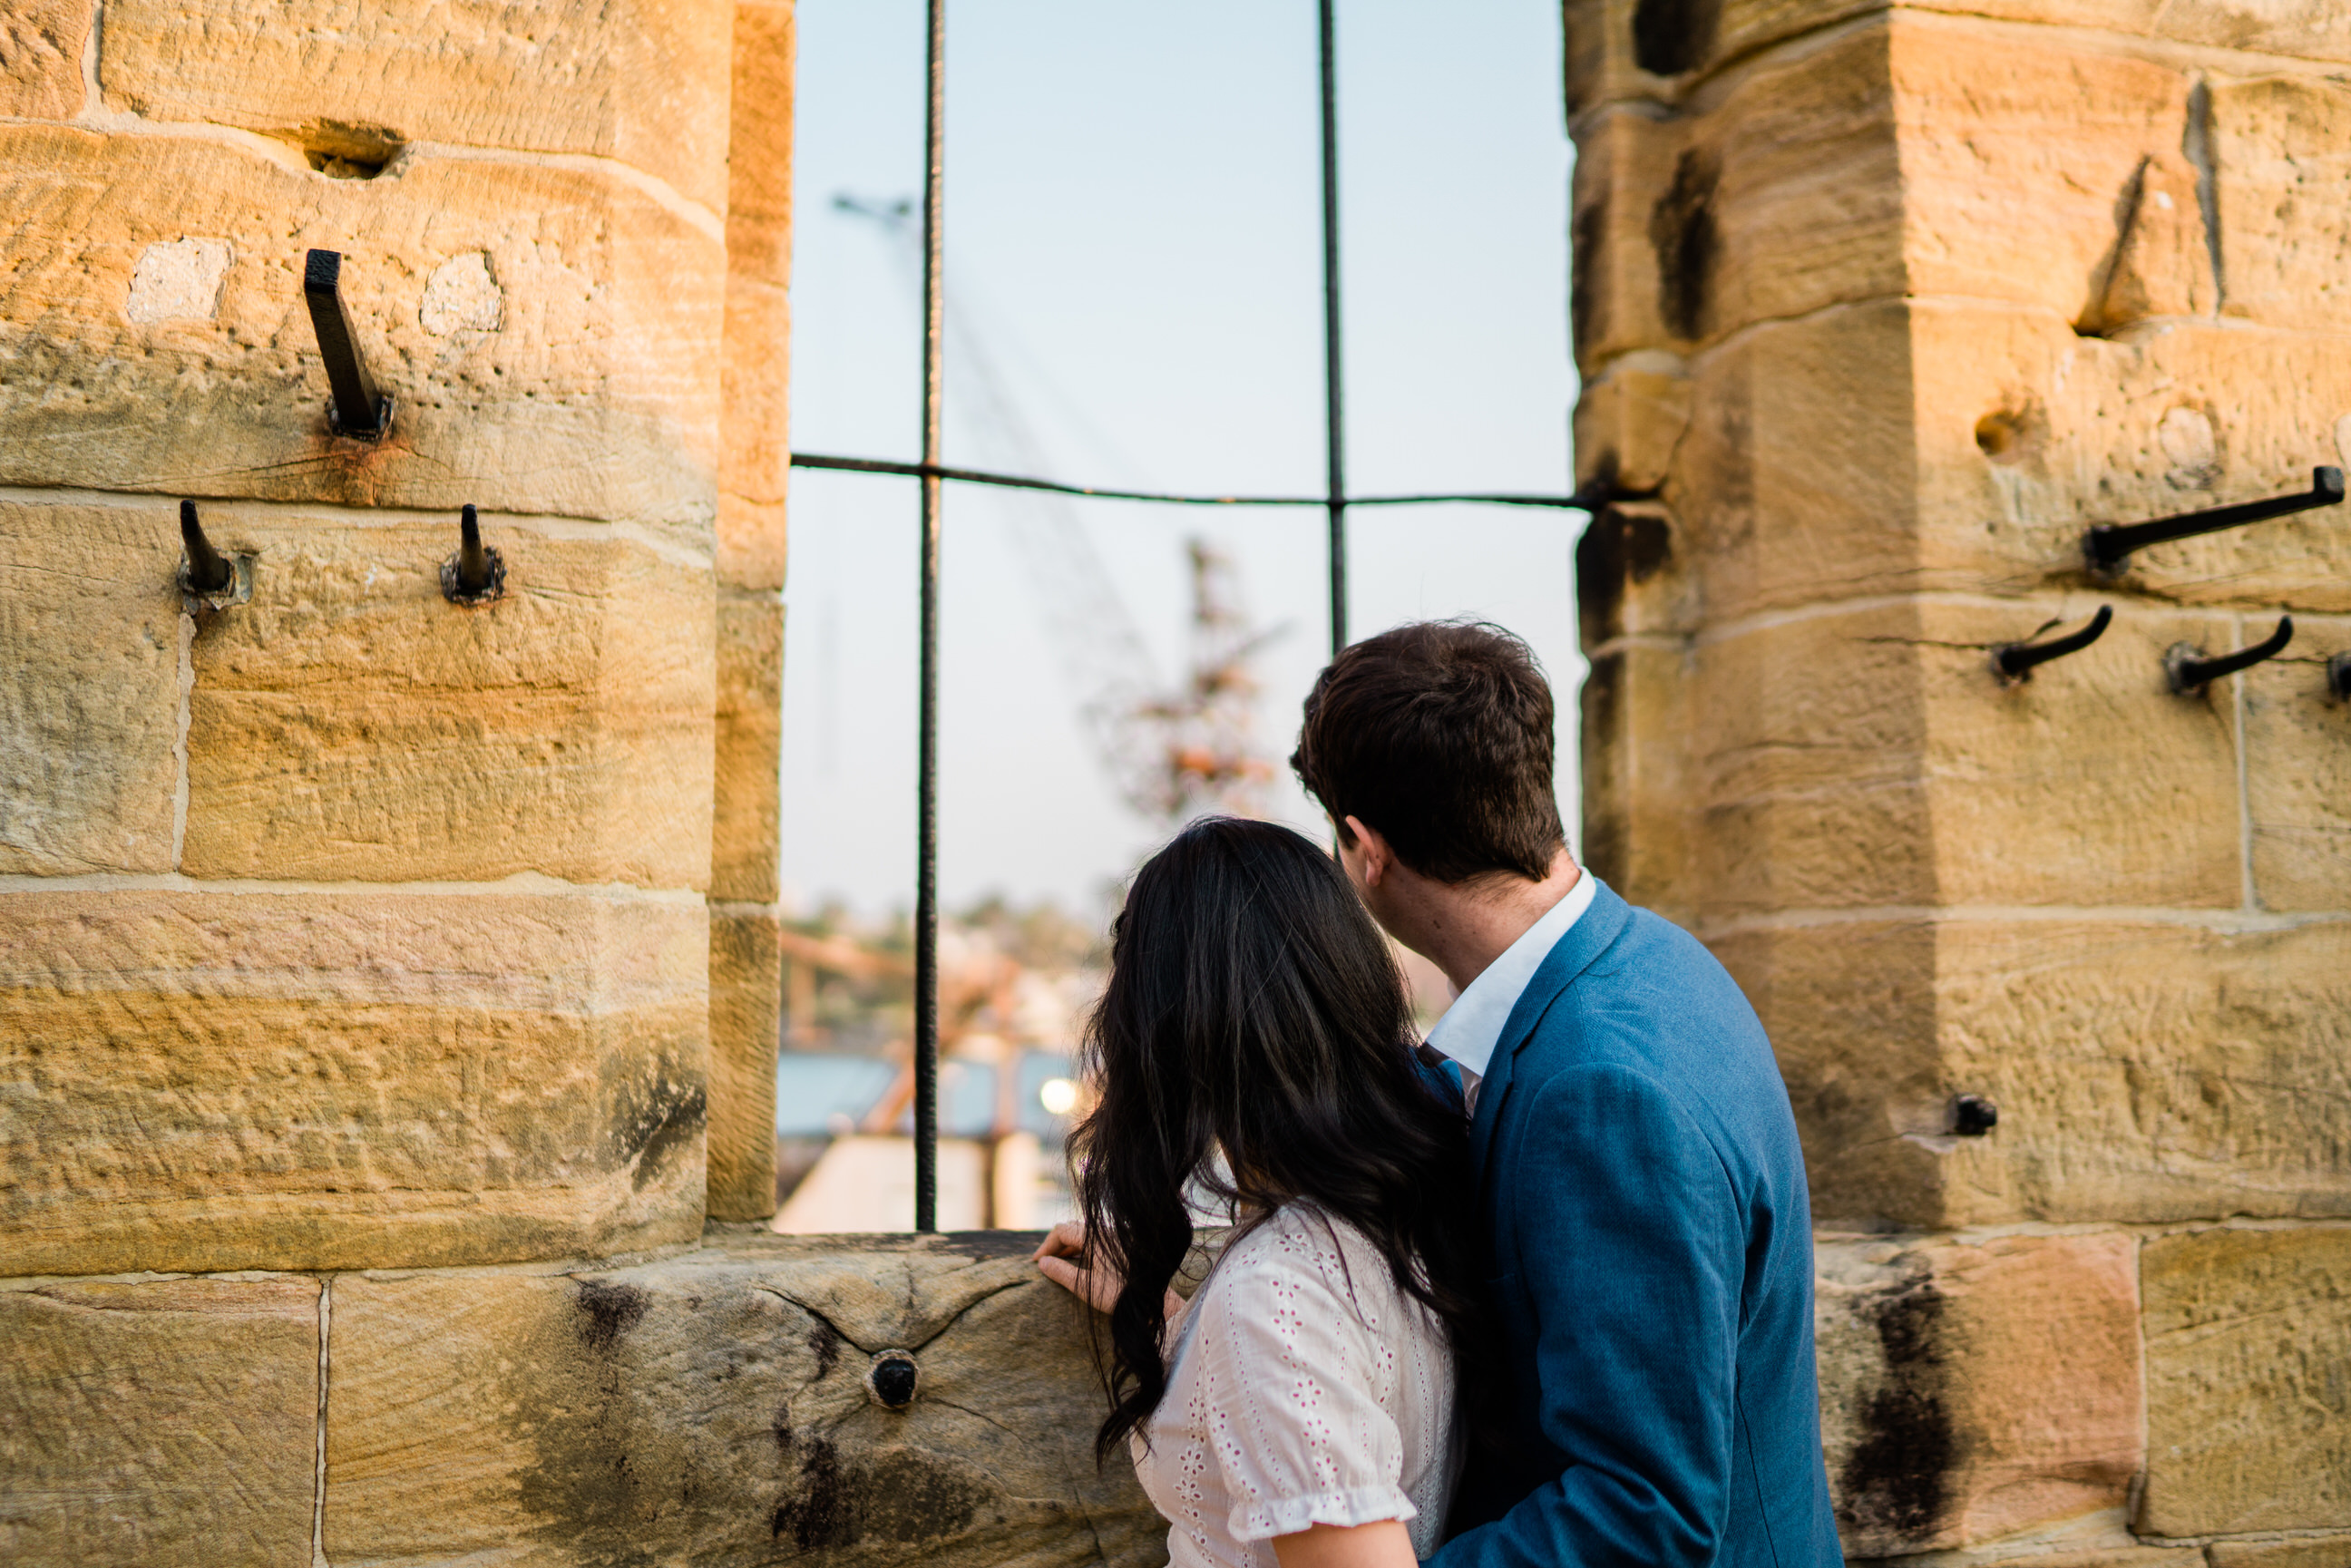 Sherry & Seb's Pre-Wedding Photos at Cockatoo Island - Photos by Fuzzy Pear Studio Sydney Wedding Photographers